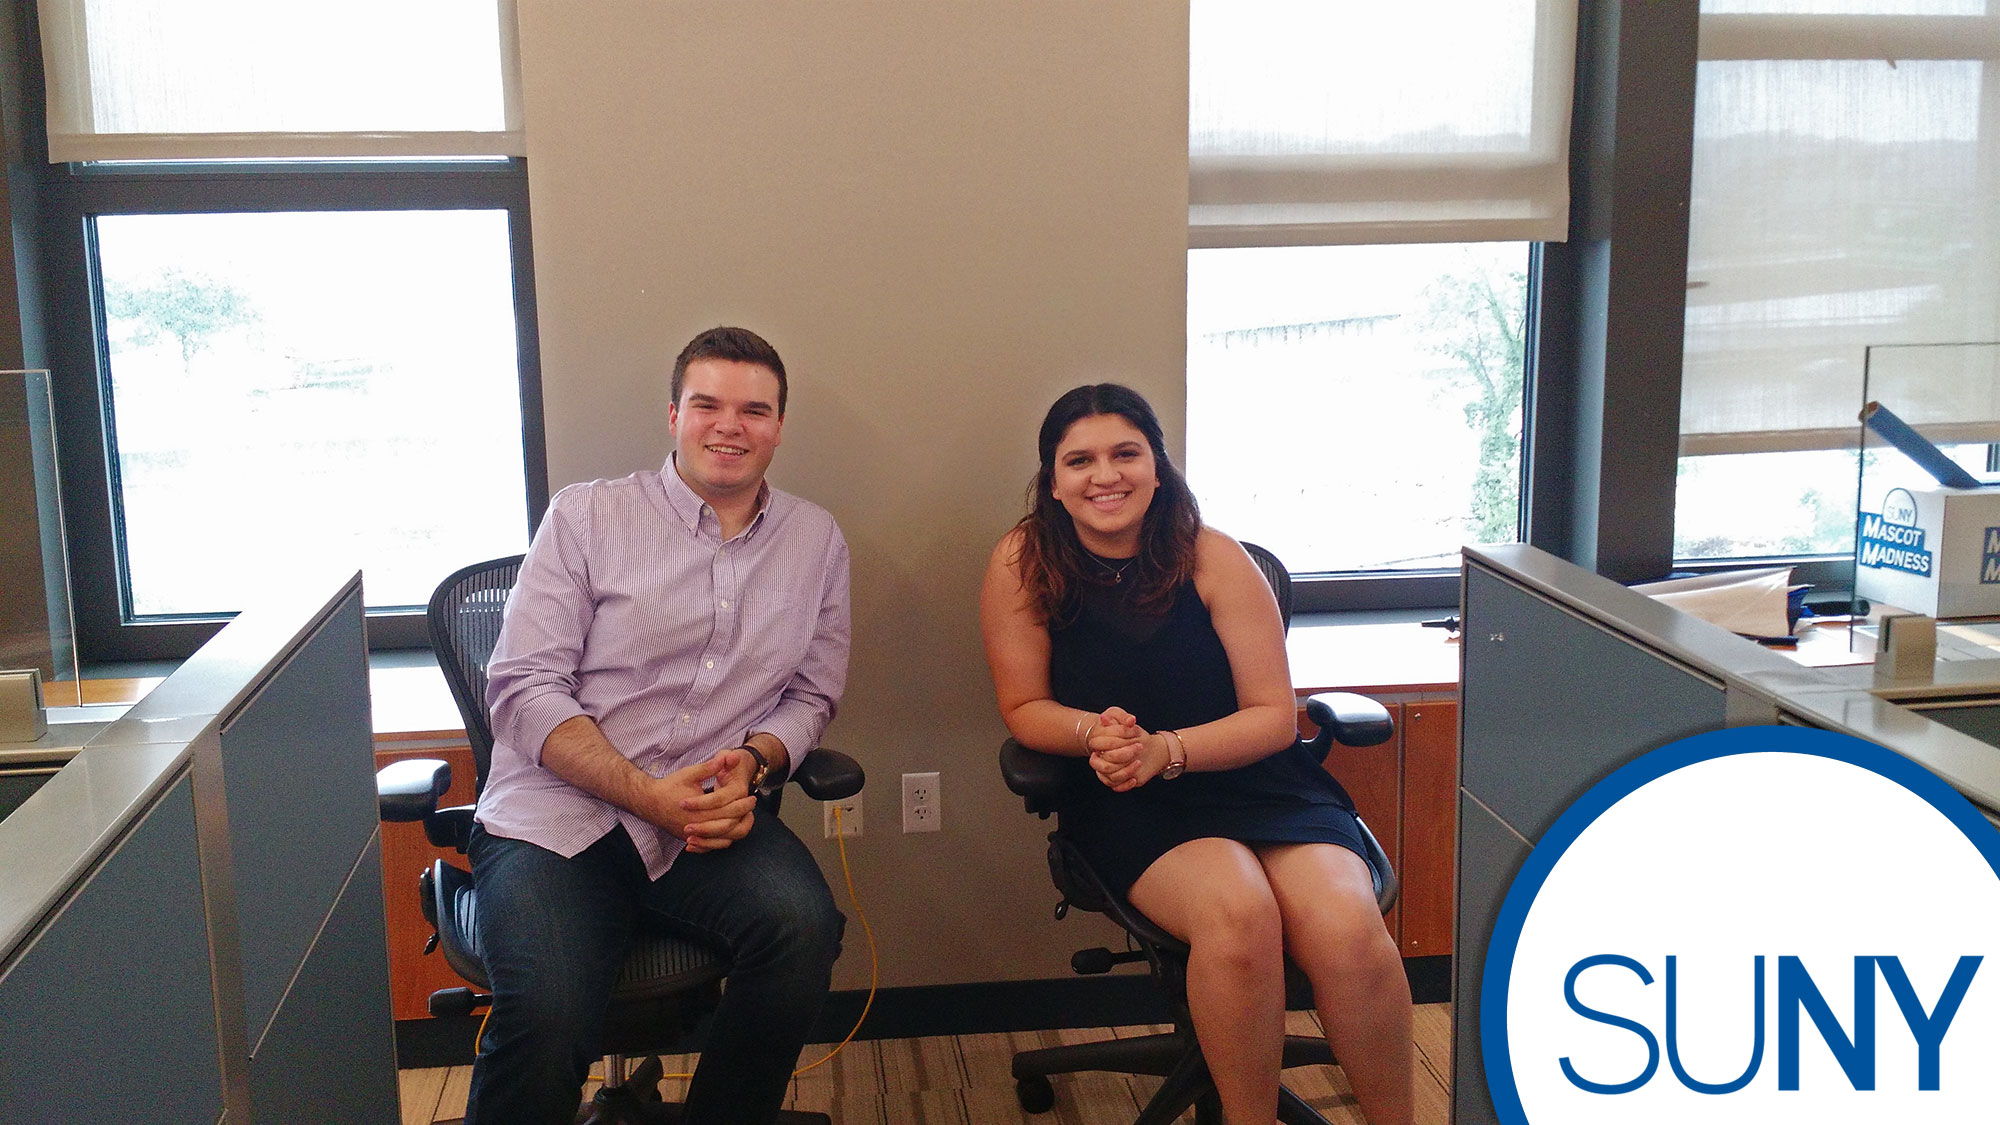 SUNY system admin interns Sarah Petrak and Nick Simons at their work stations.